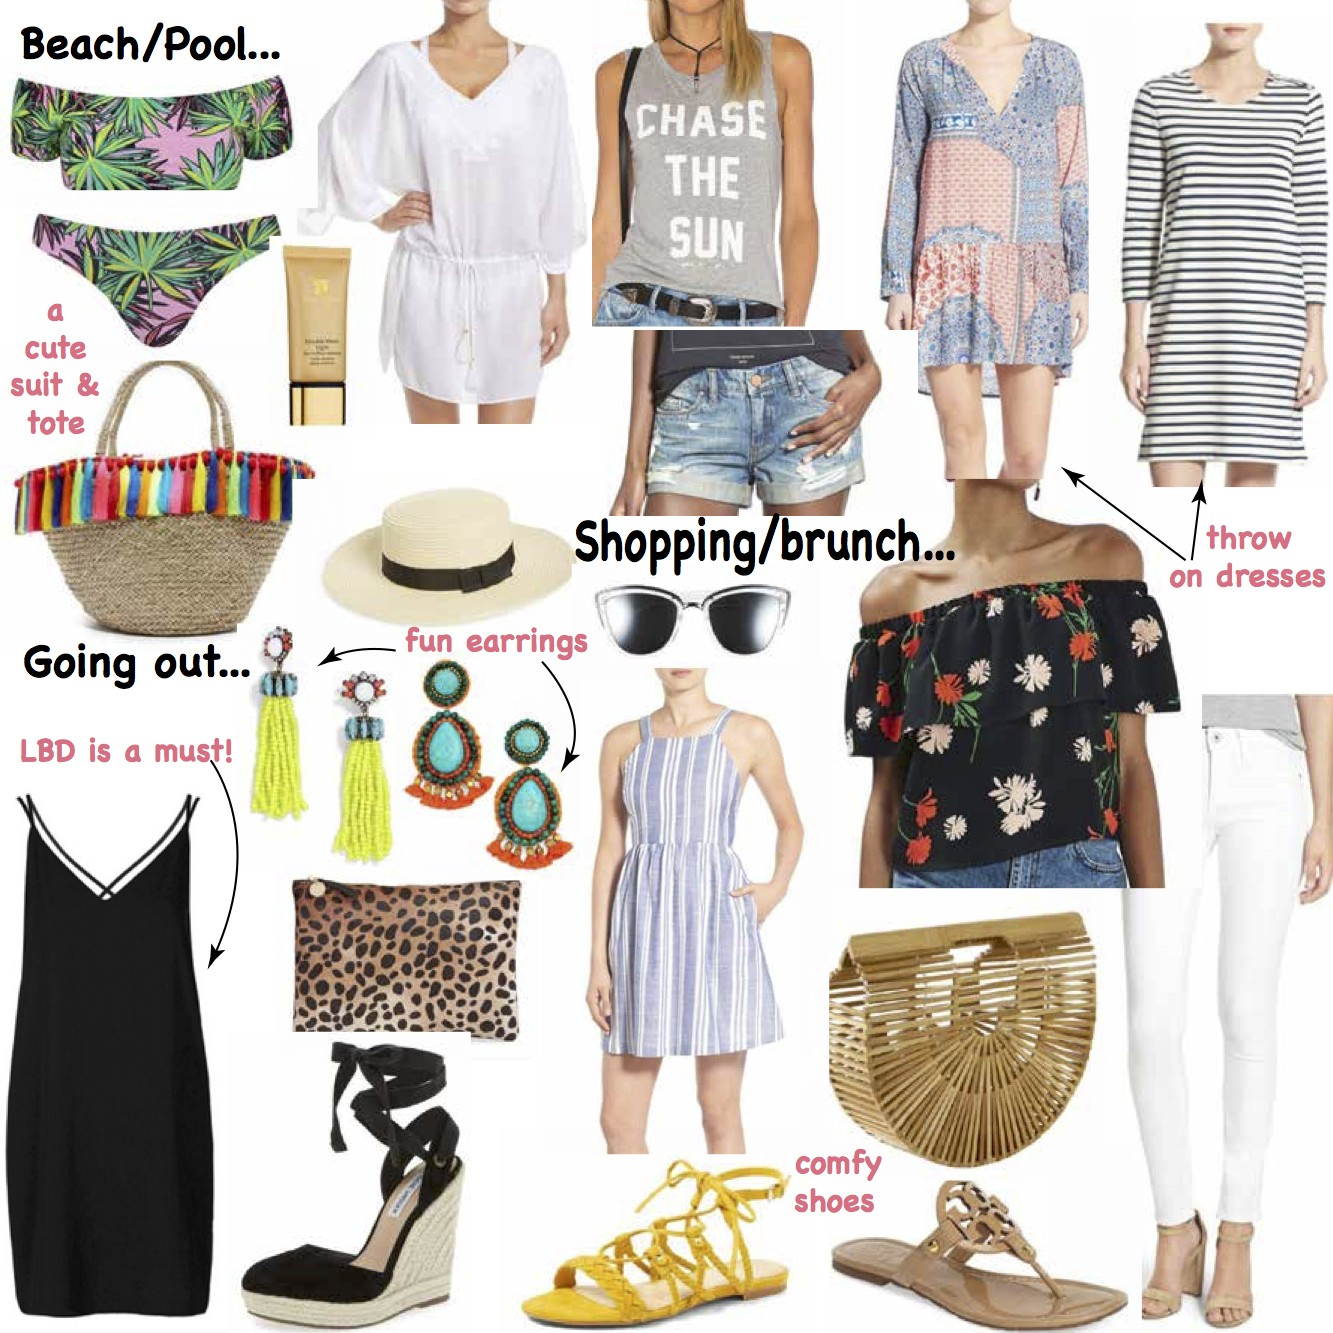 What To Pack For A Bachelorette Party